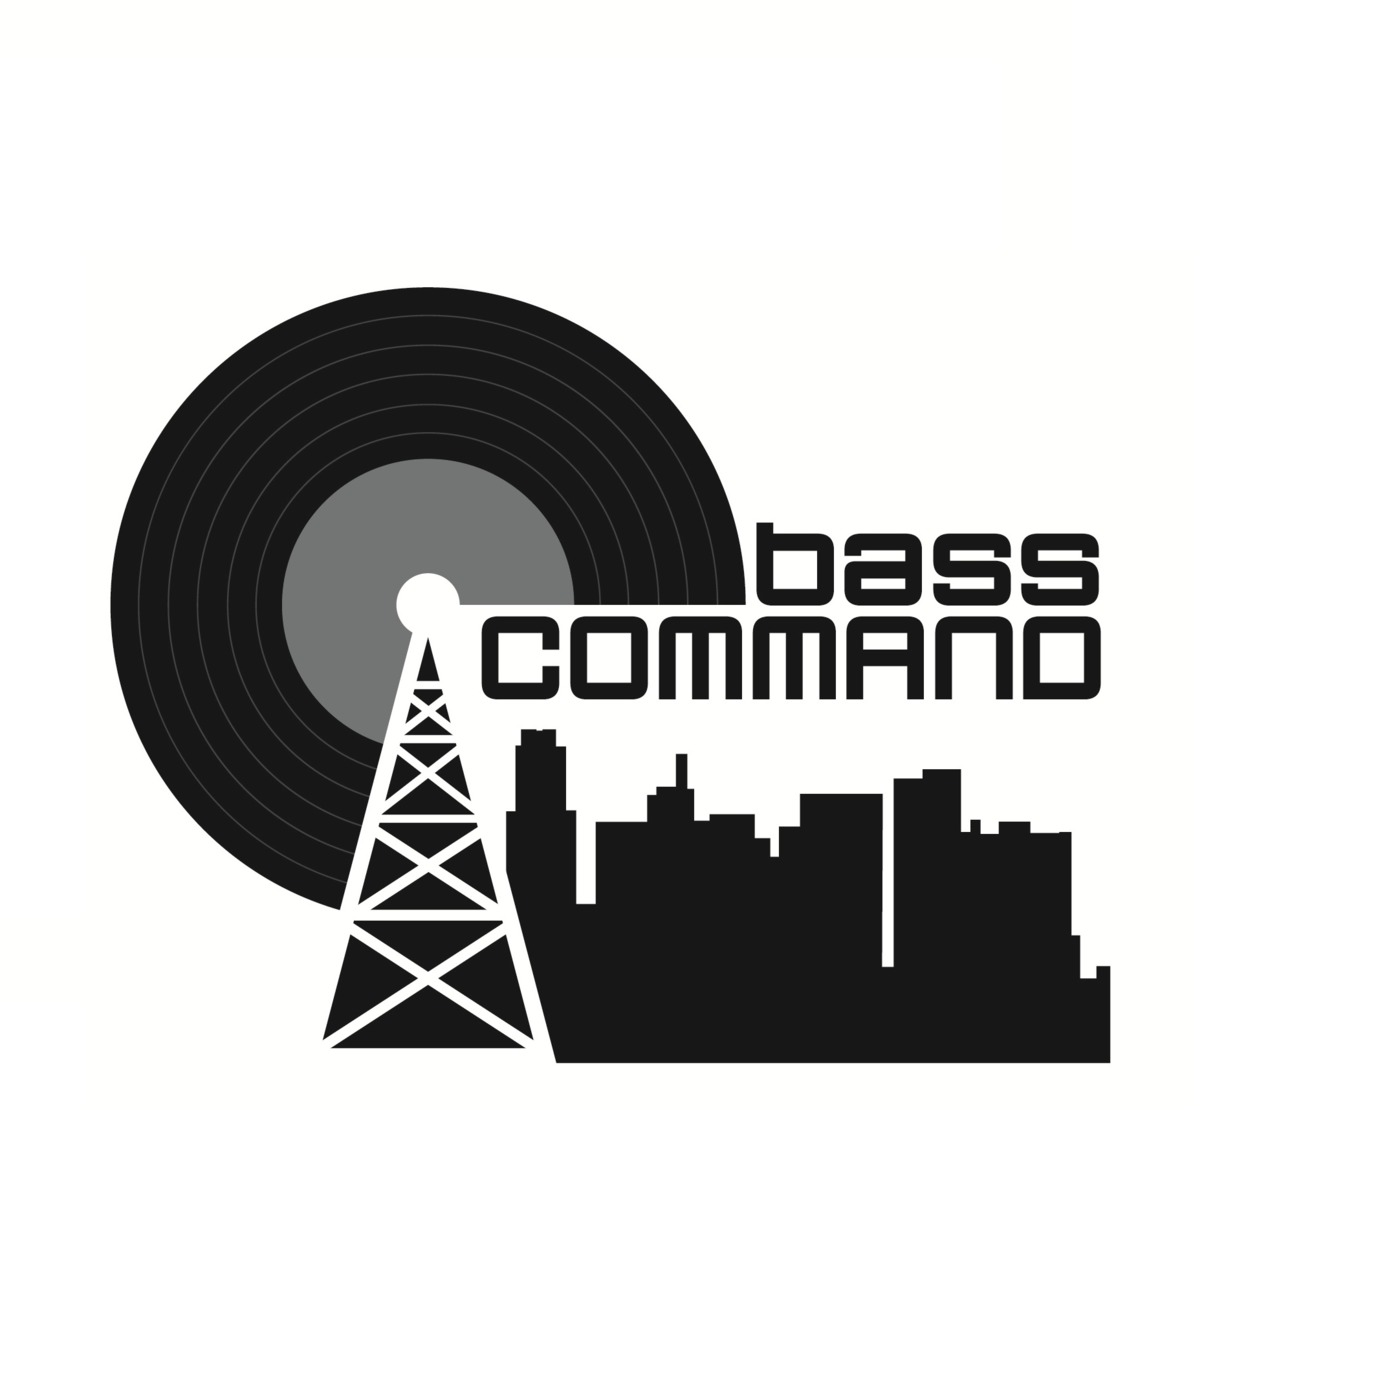 Bass Command DnB Podcast